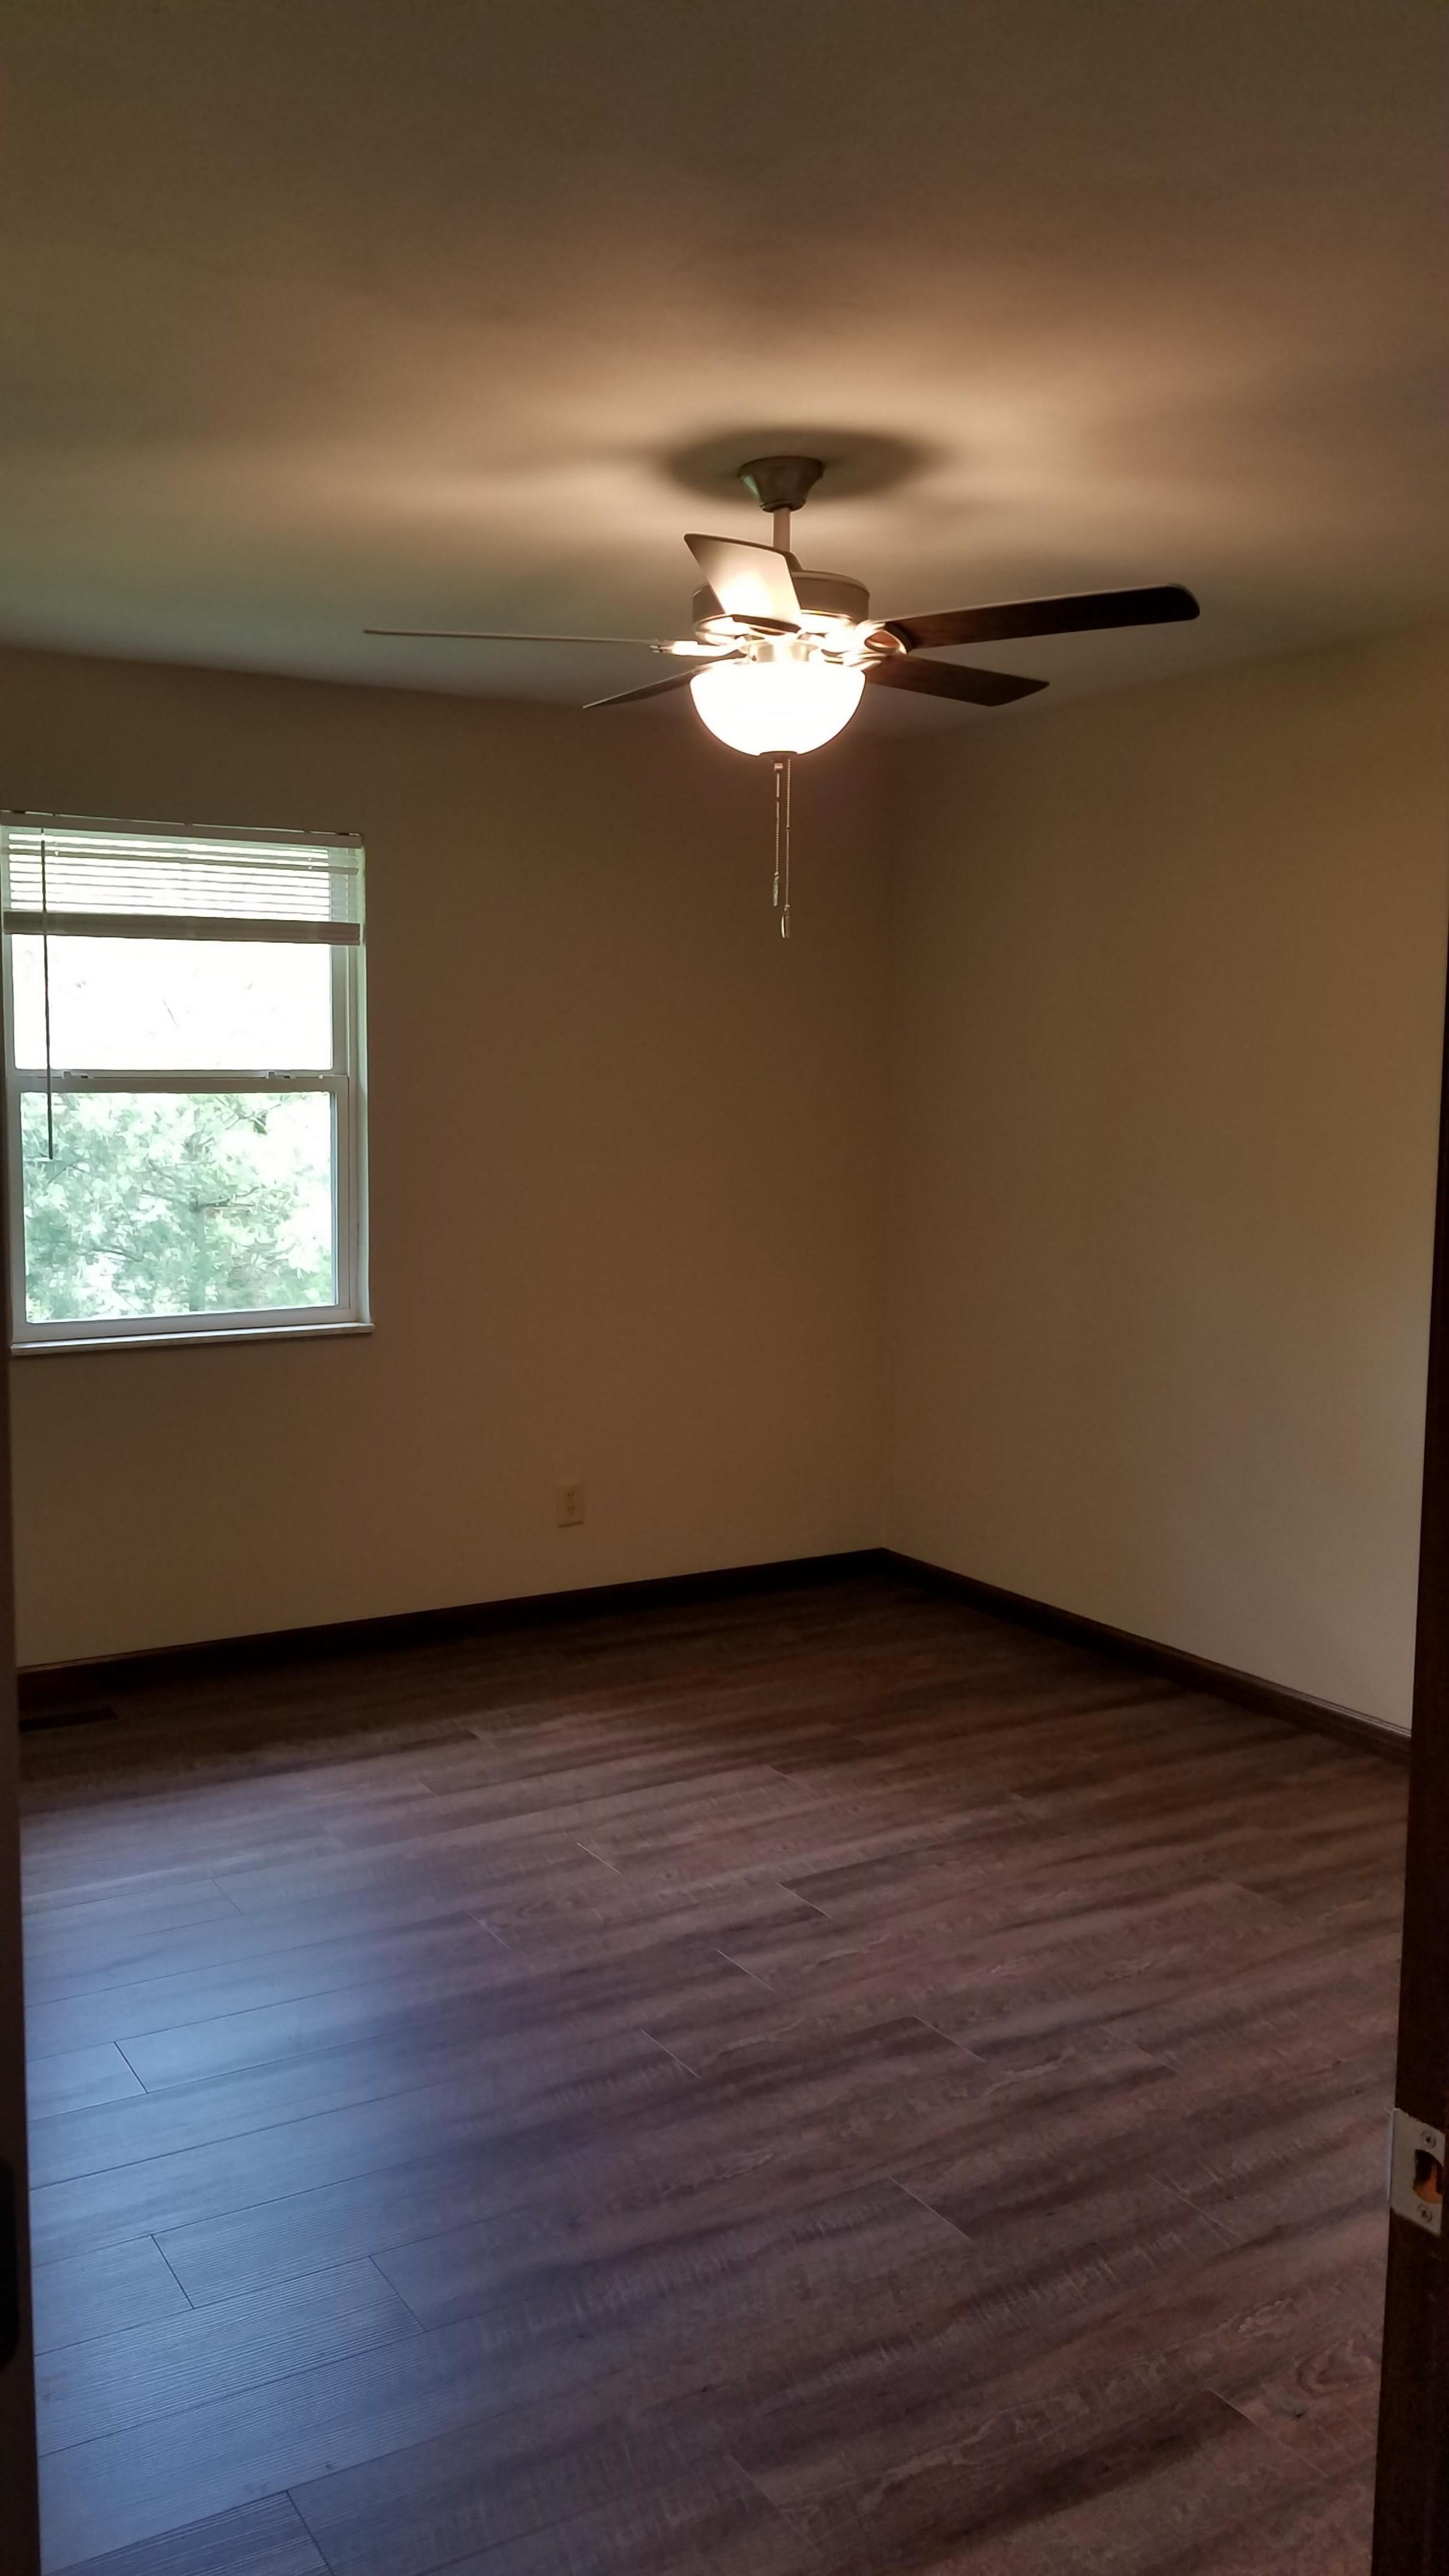 Images of 27 Heritage Pl